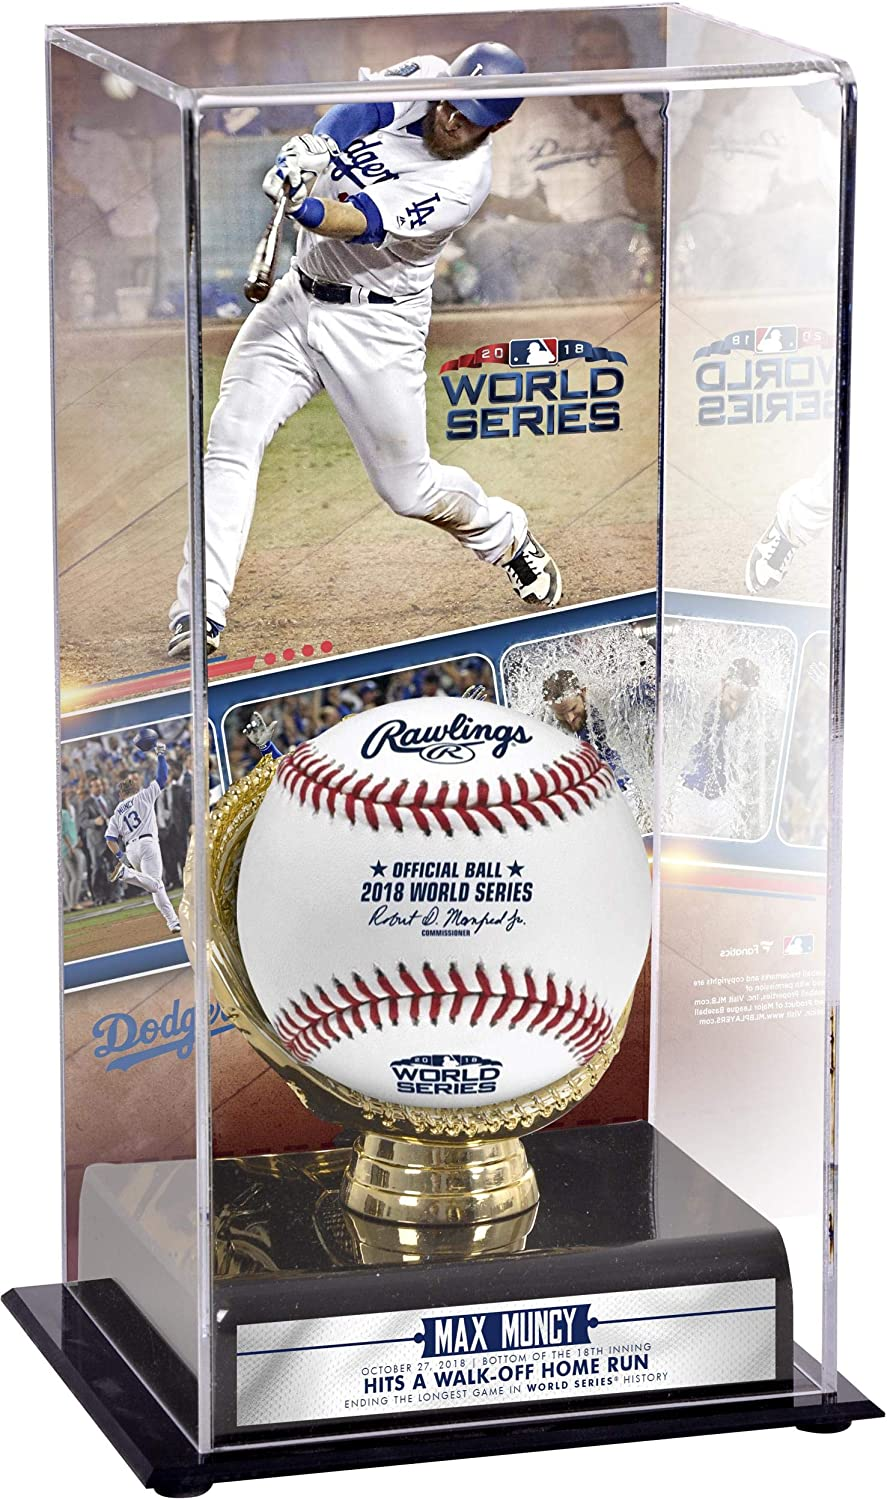 Max Muncy Los Angeles Dodgers 2018 World Series Game 3 Walkoff Home Run Sublimated Display Case with Image - Baseball Display Cases No Logo